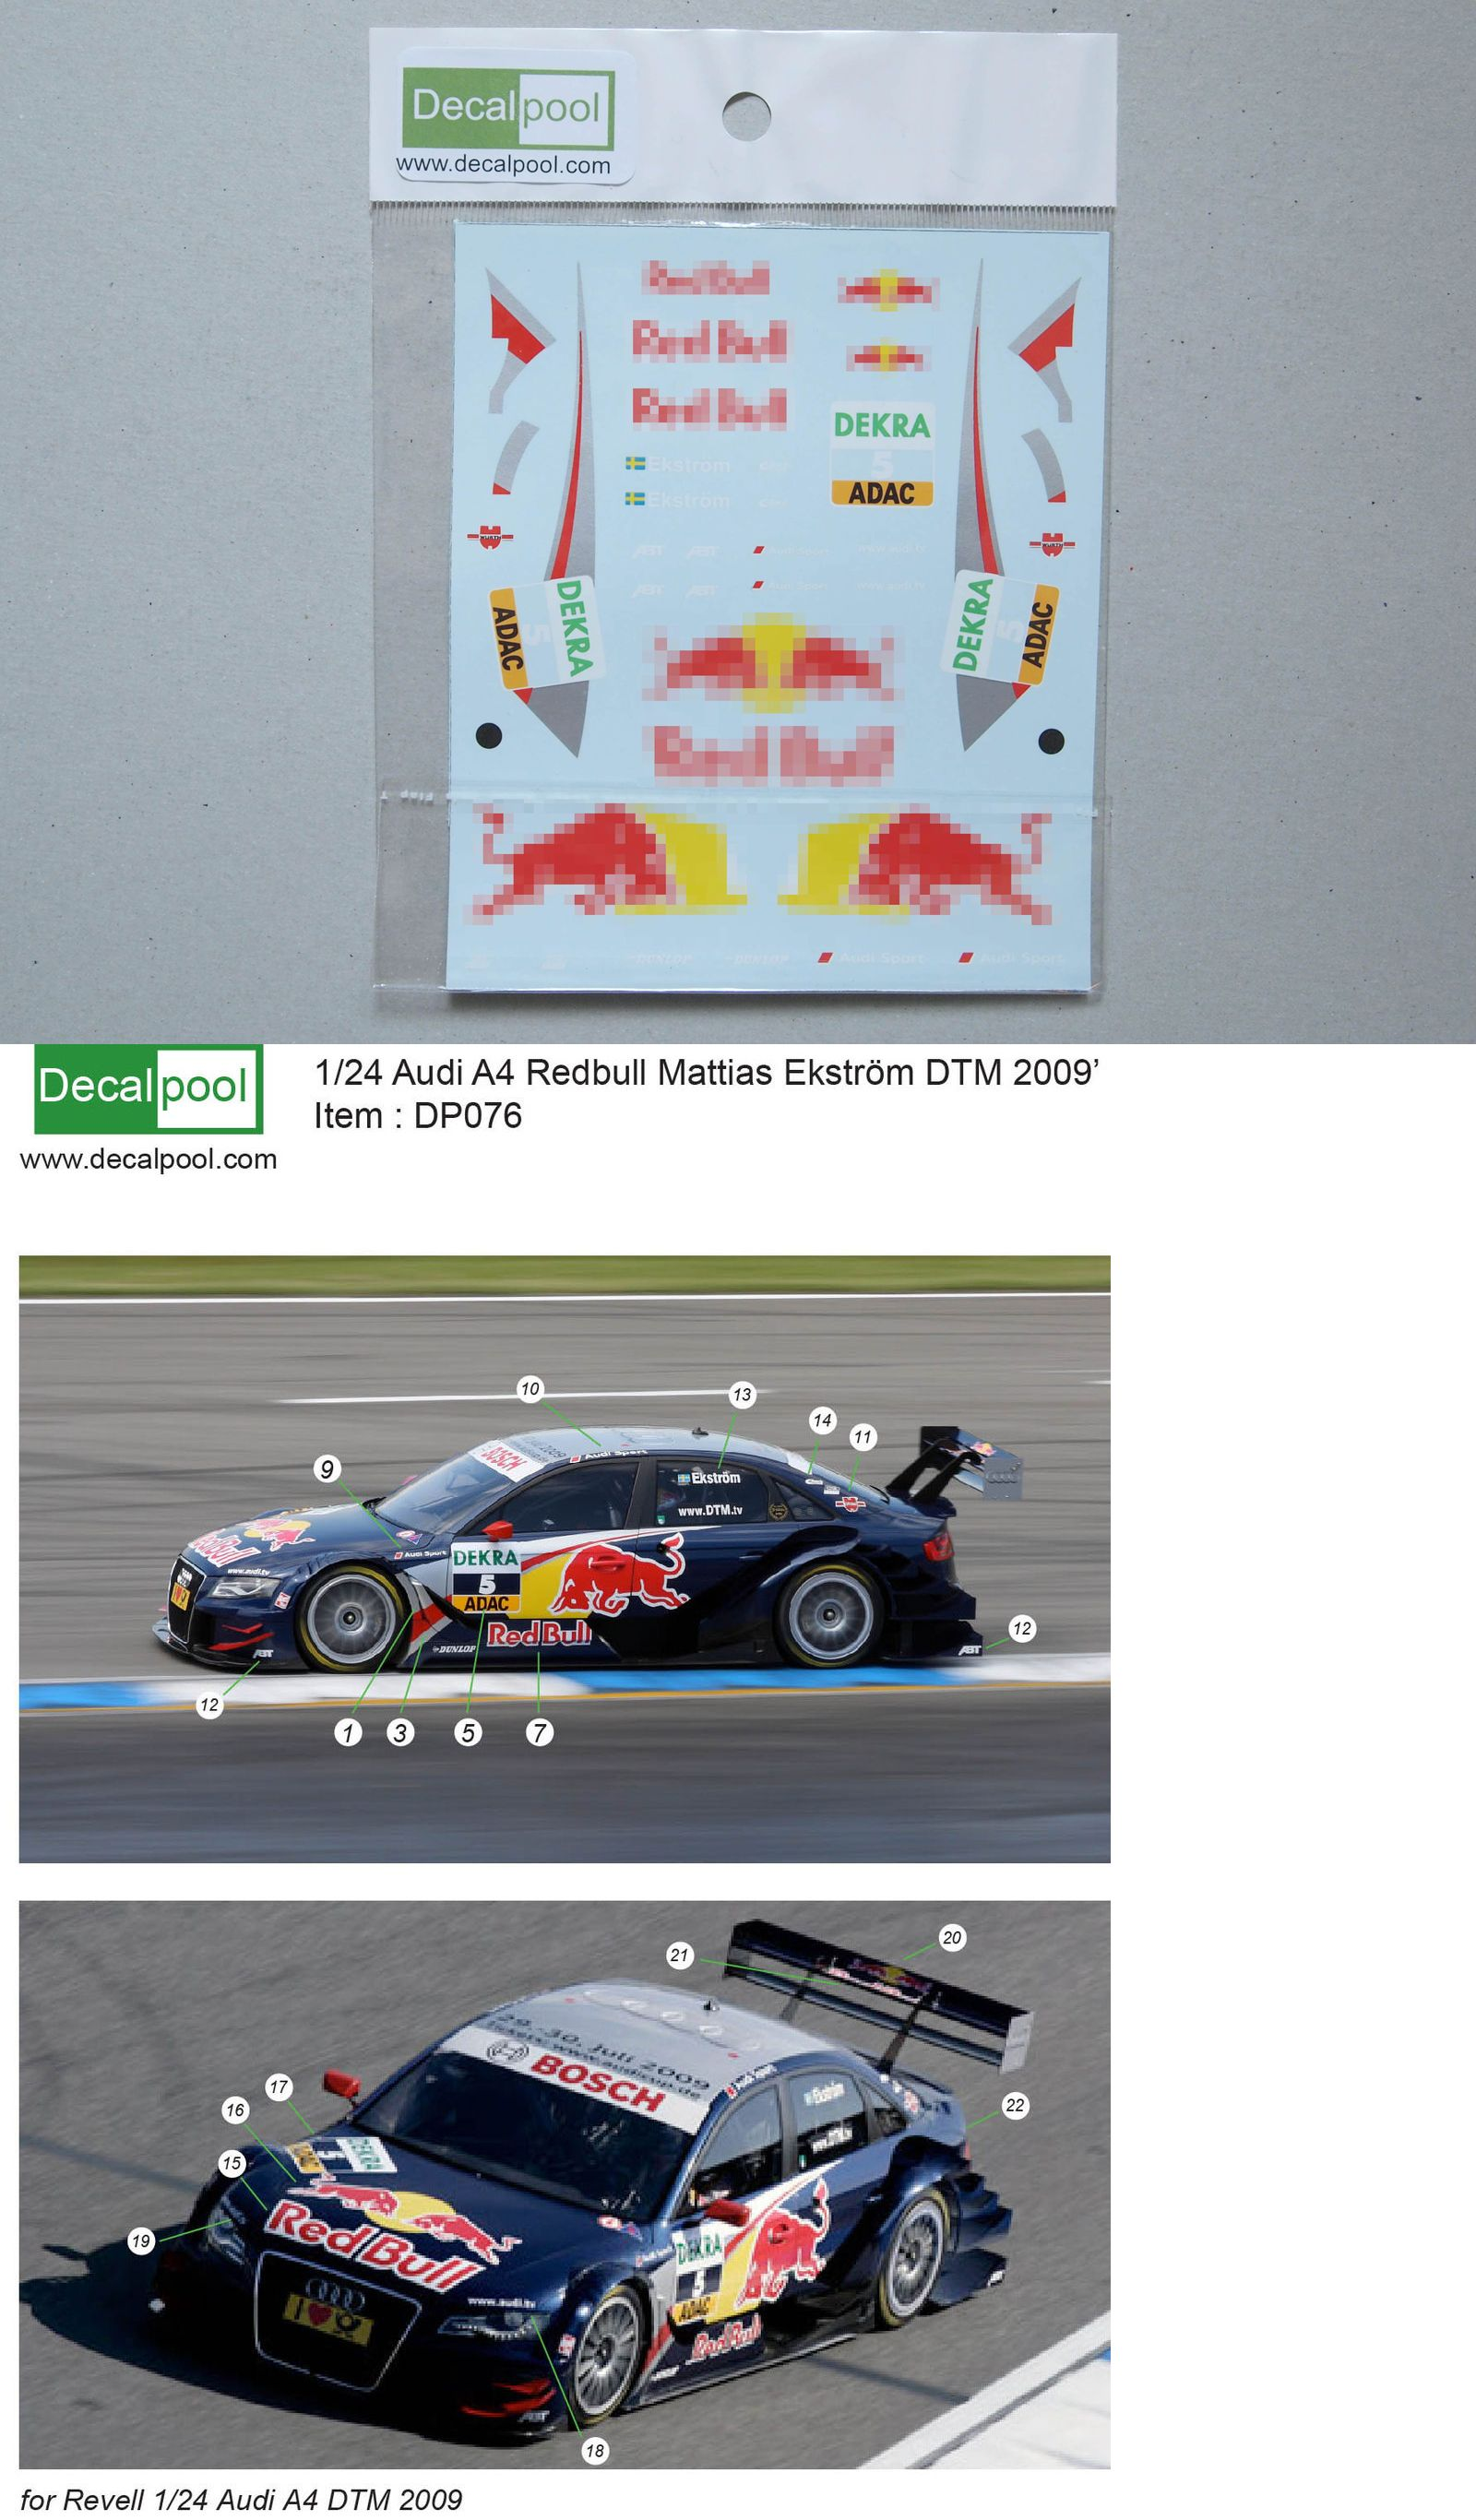 Decals 152927 1 24 Audi A4 Redbull Dtm 09 Option Decal For Revell Buy It Now Only 13 On Ebay Decals Redbull Option Decal Revell Audi A4 Revell Audi